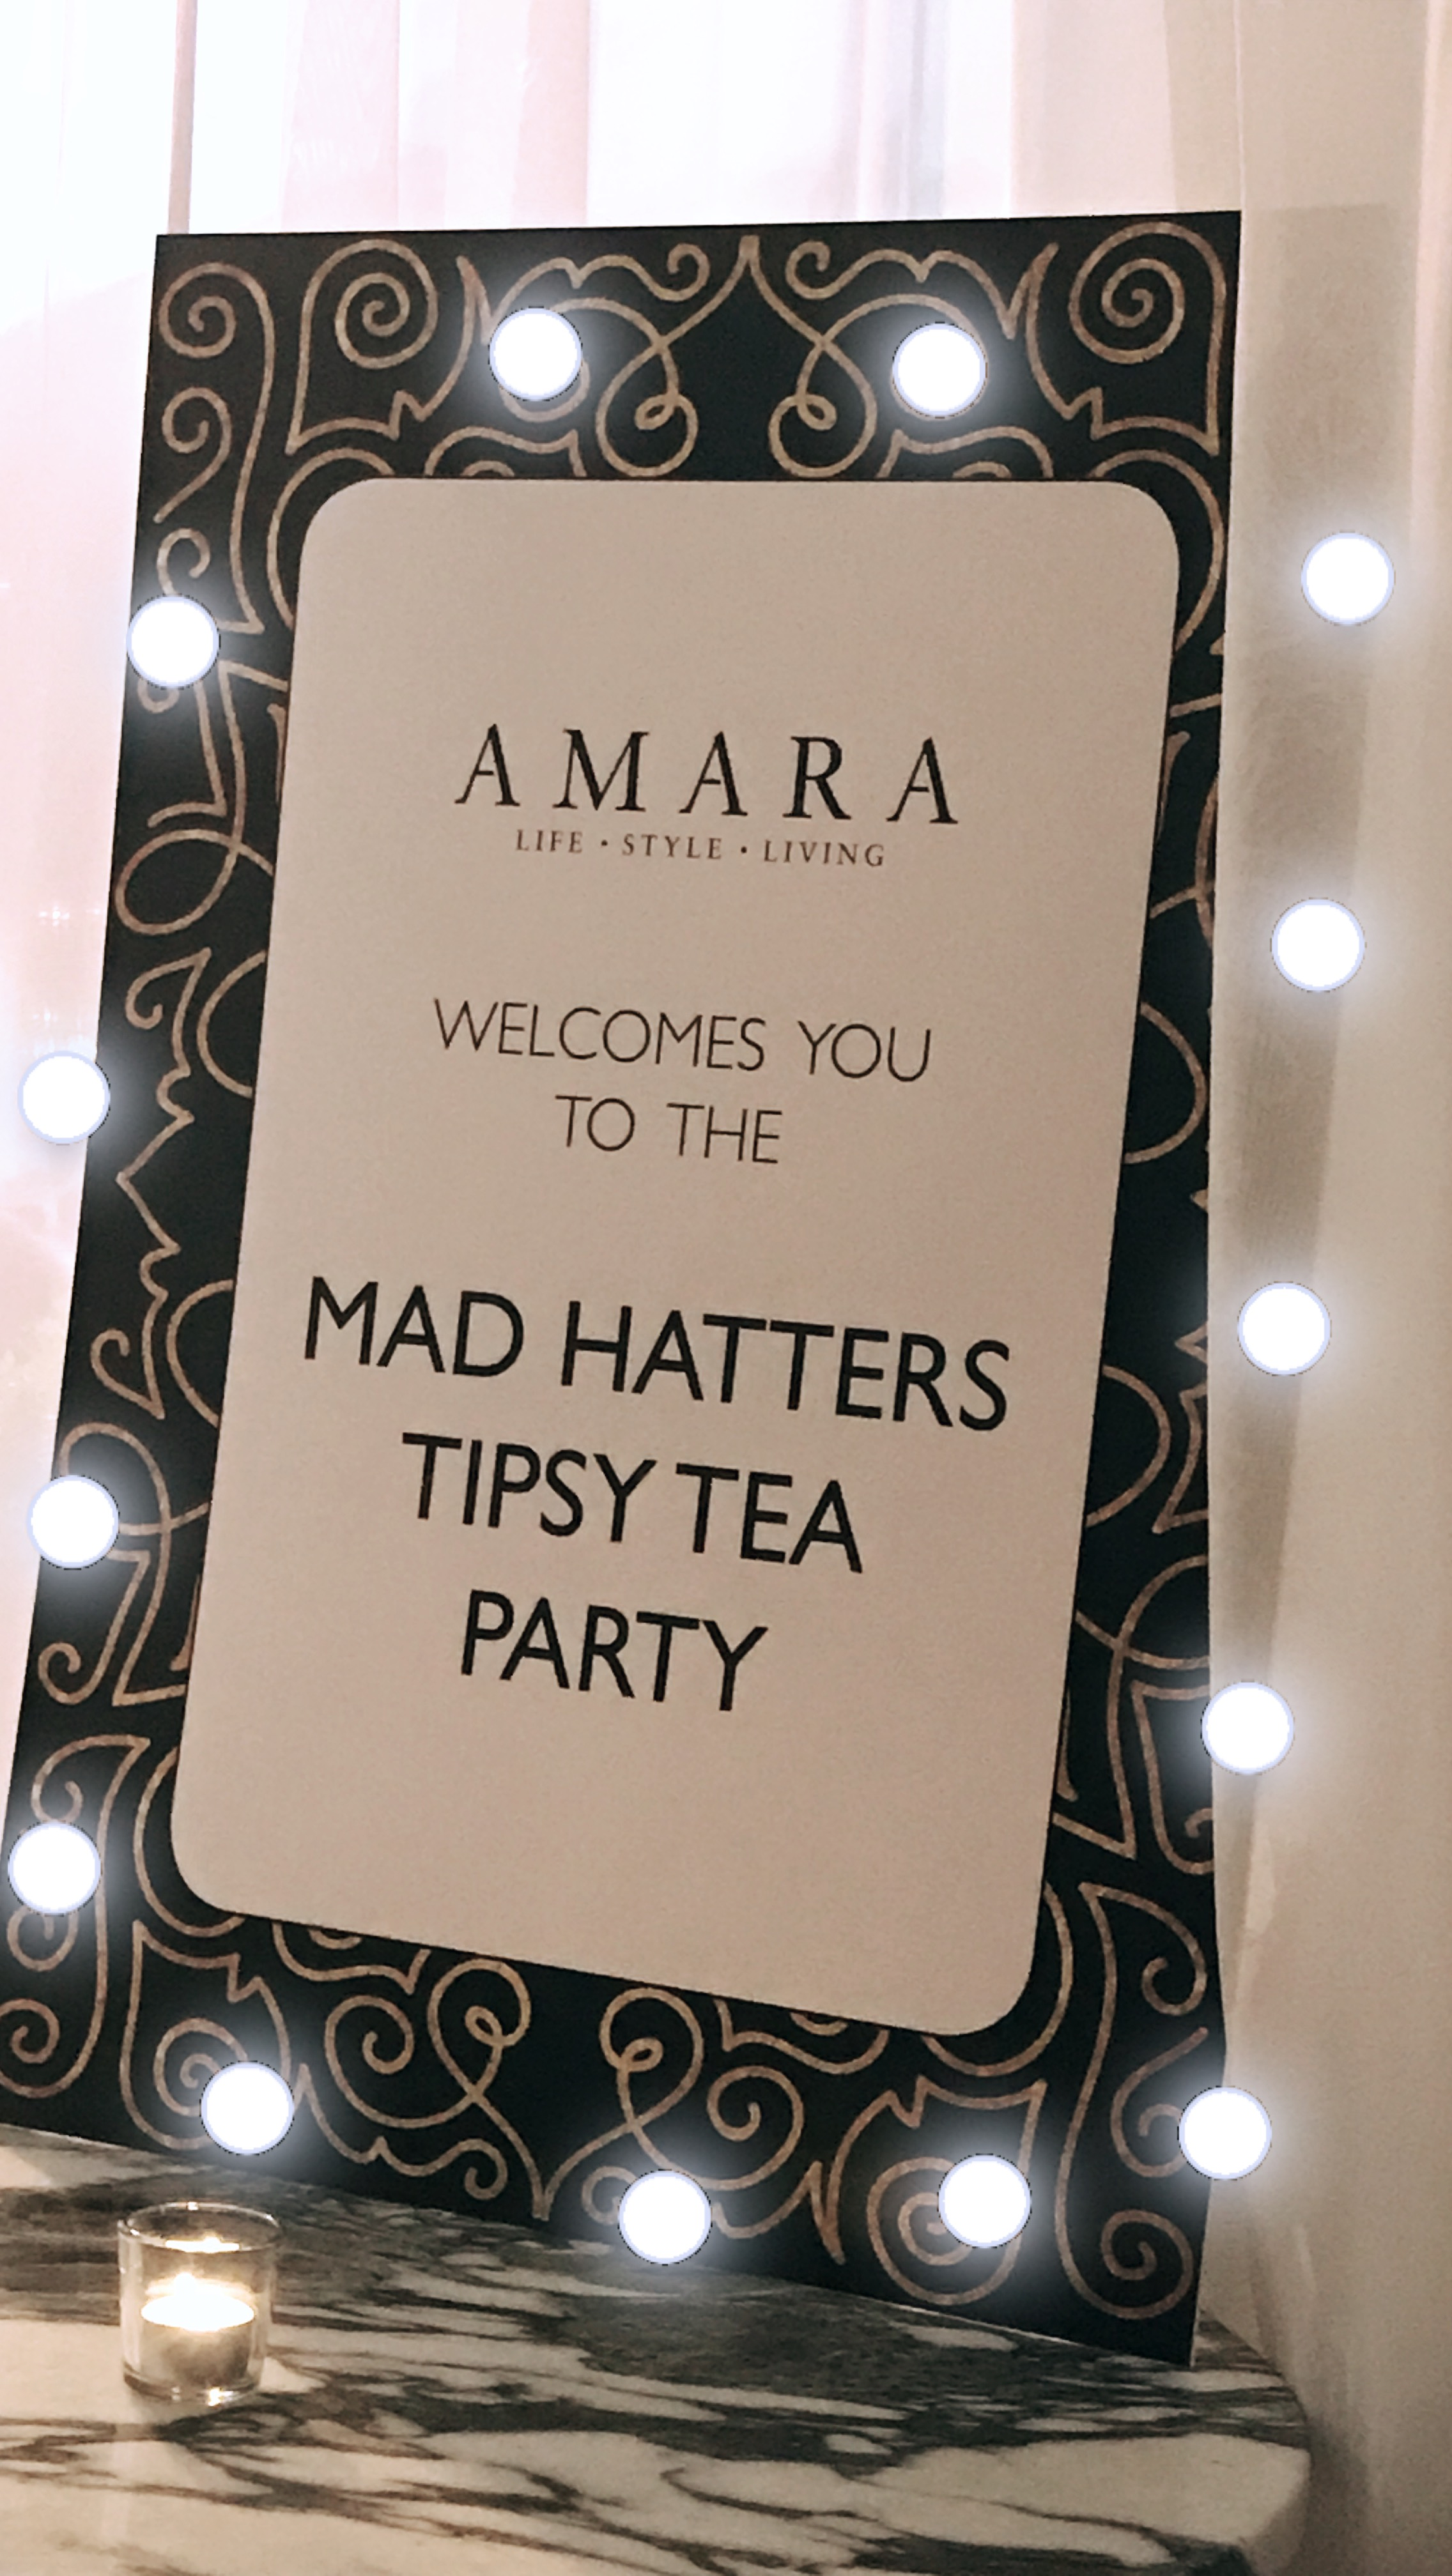 Amara tea party at The Sanderson Hotel In London